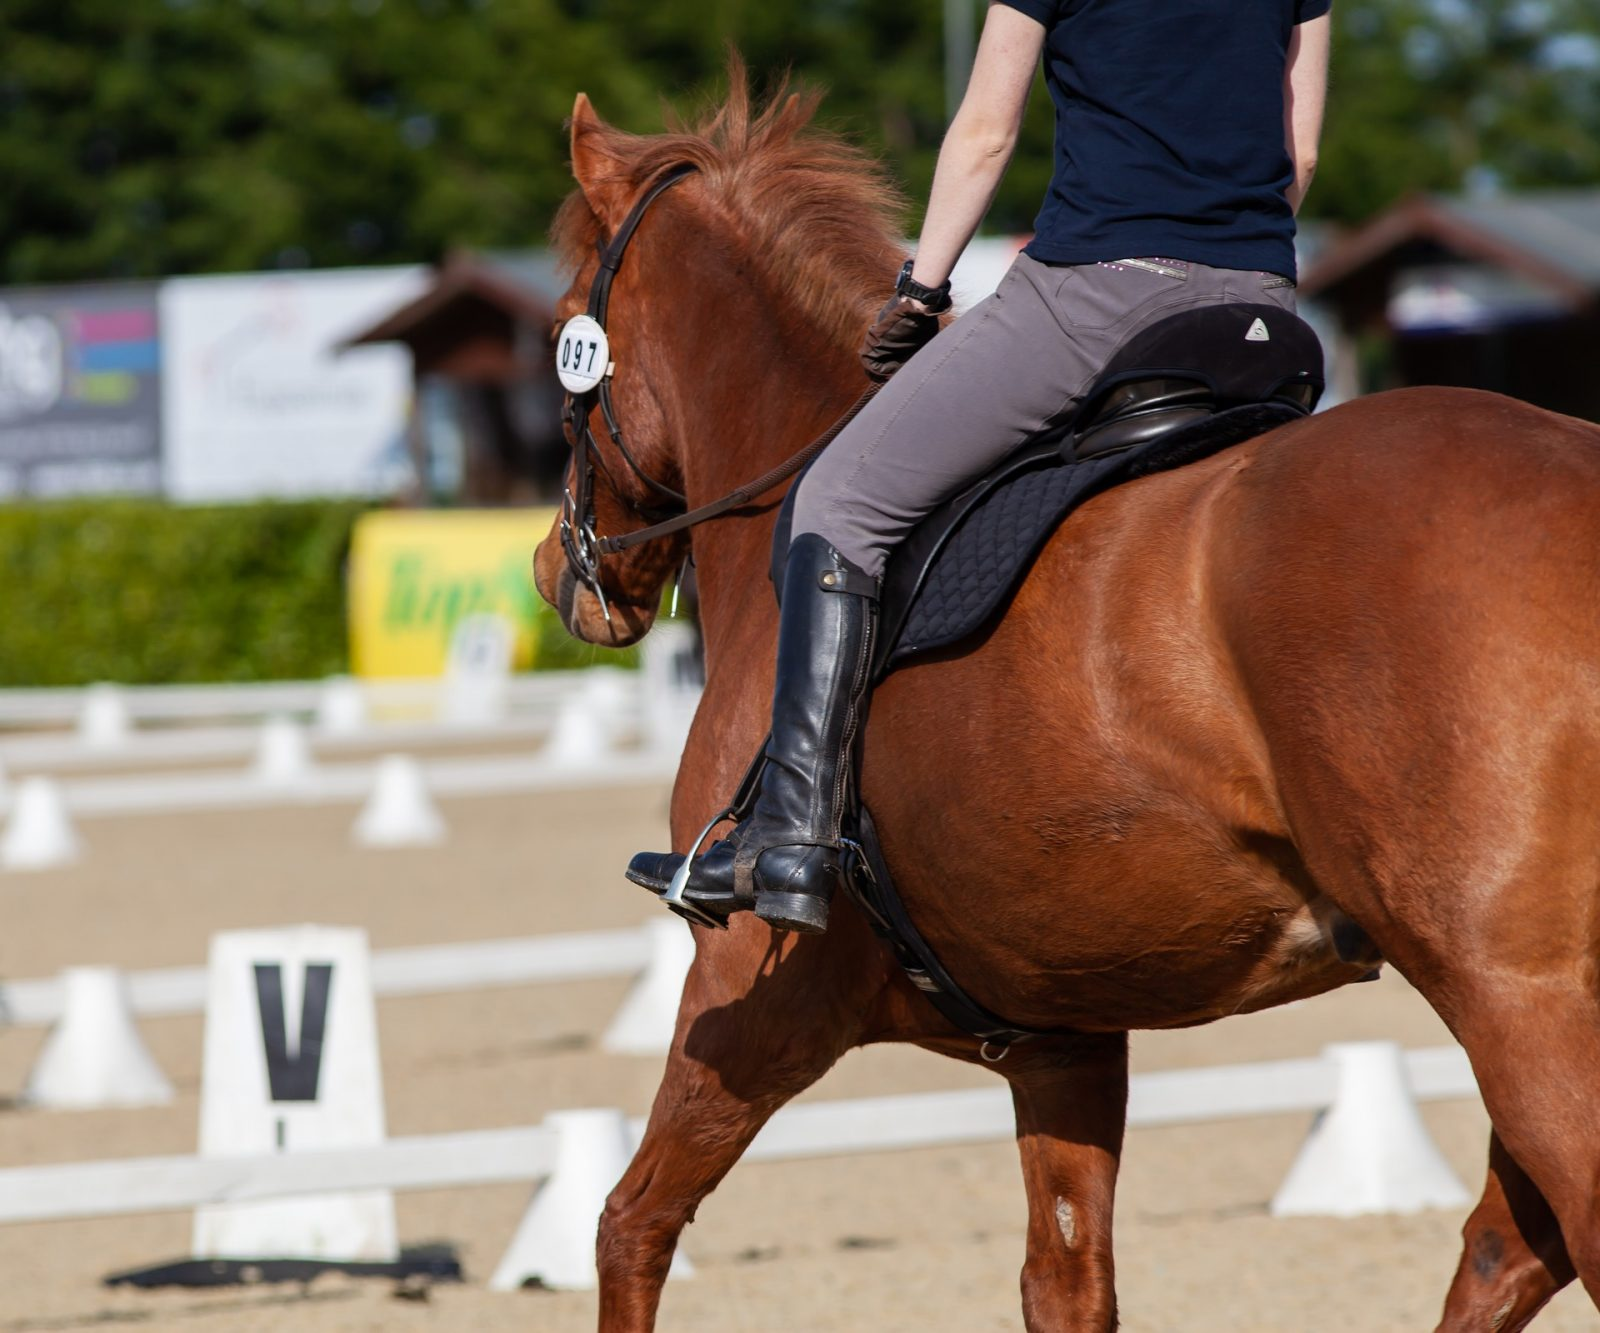 CDIs AND COVID- IMPACT ON WEST COAST DRESSAGE COMPETITIONS